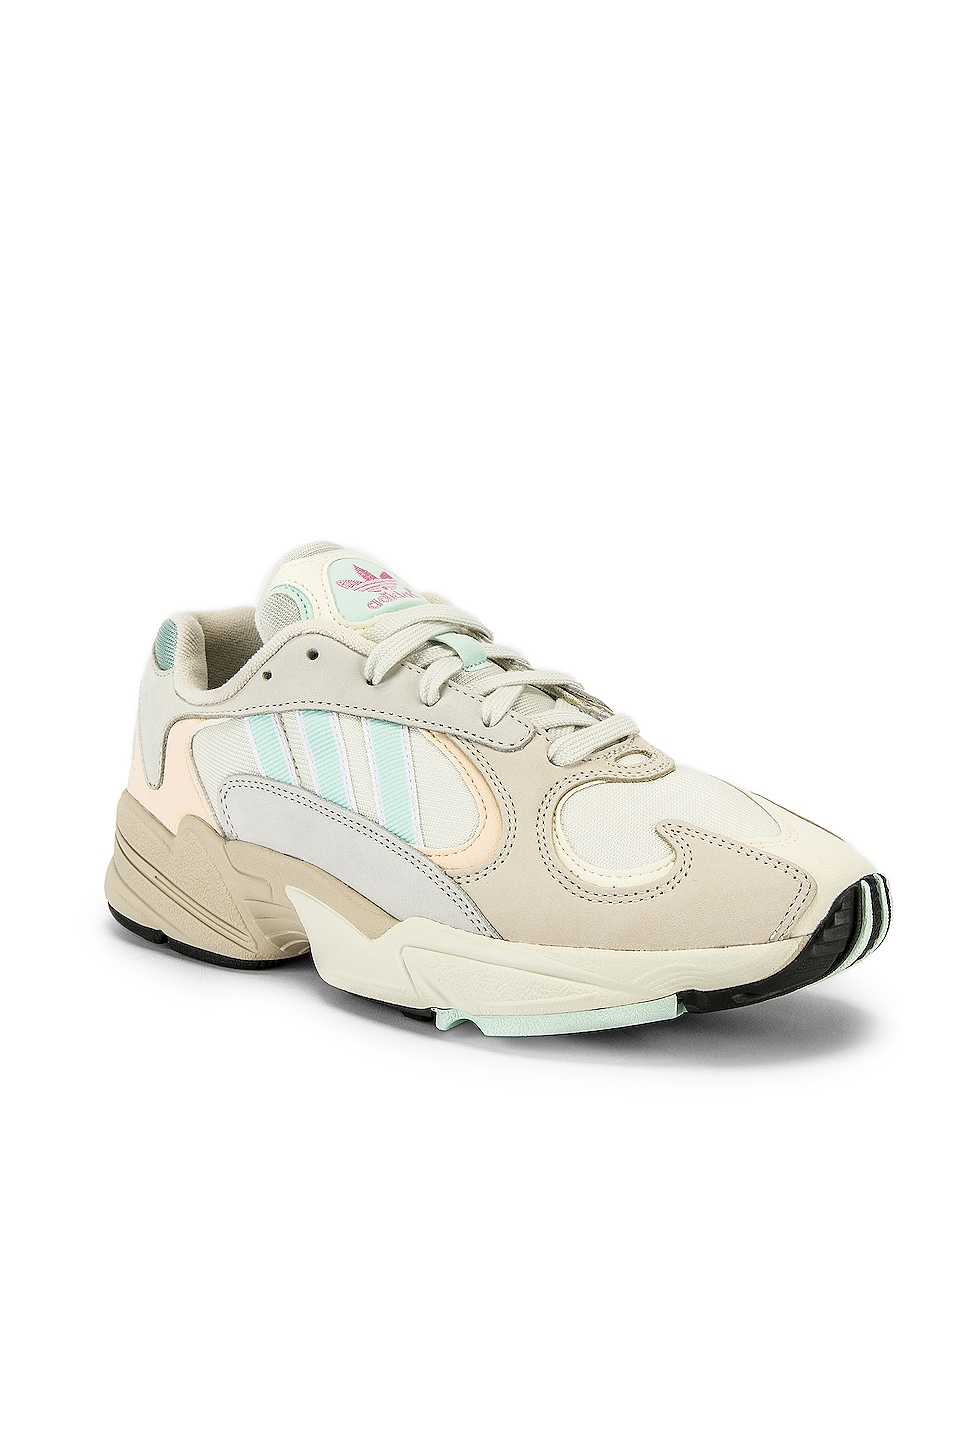 adidas Originals Yung-1 in Off White & Ice